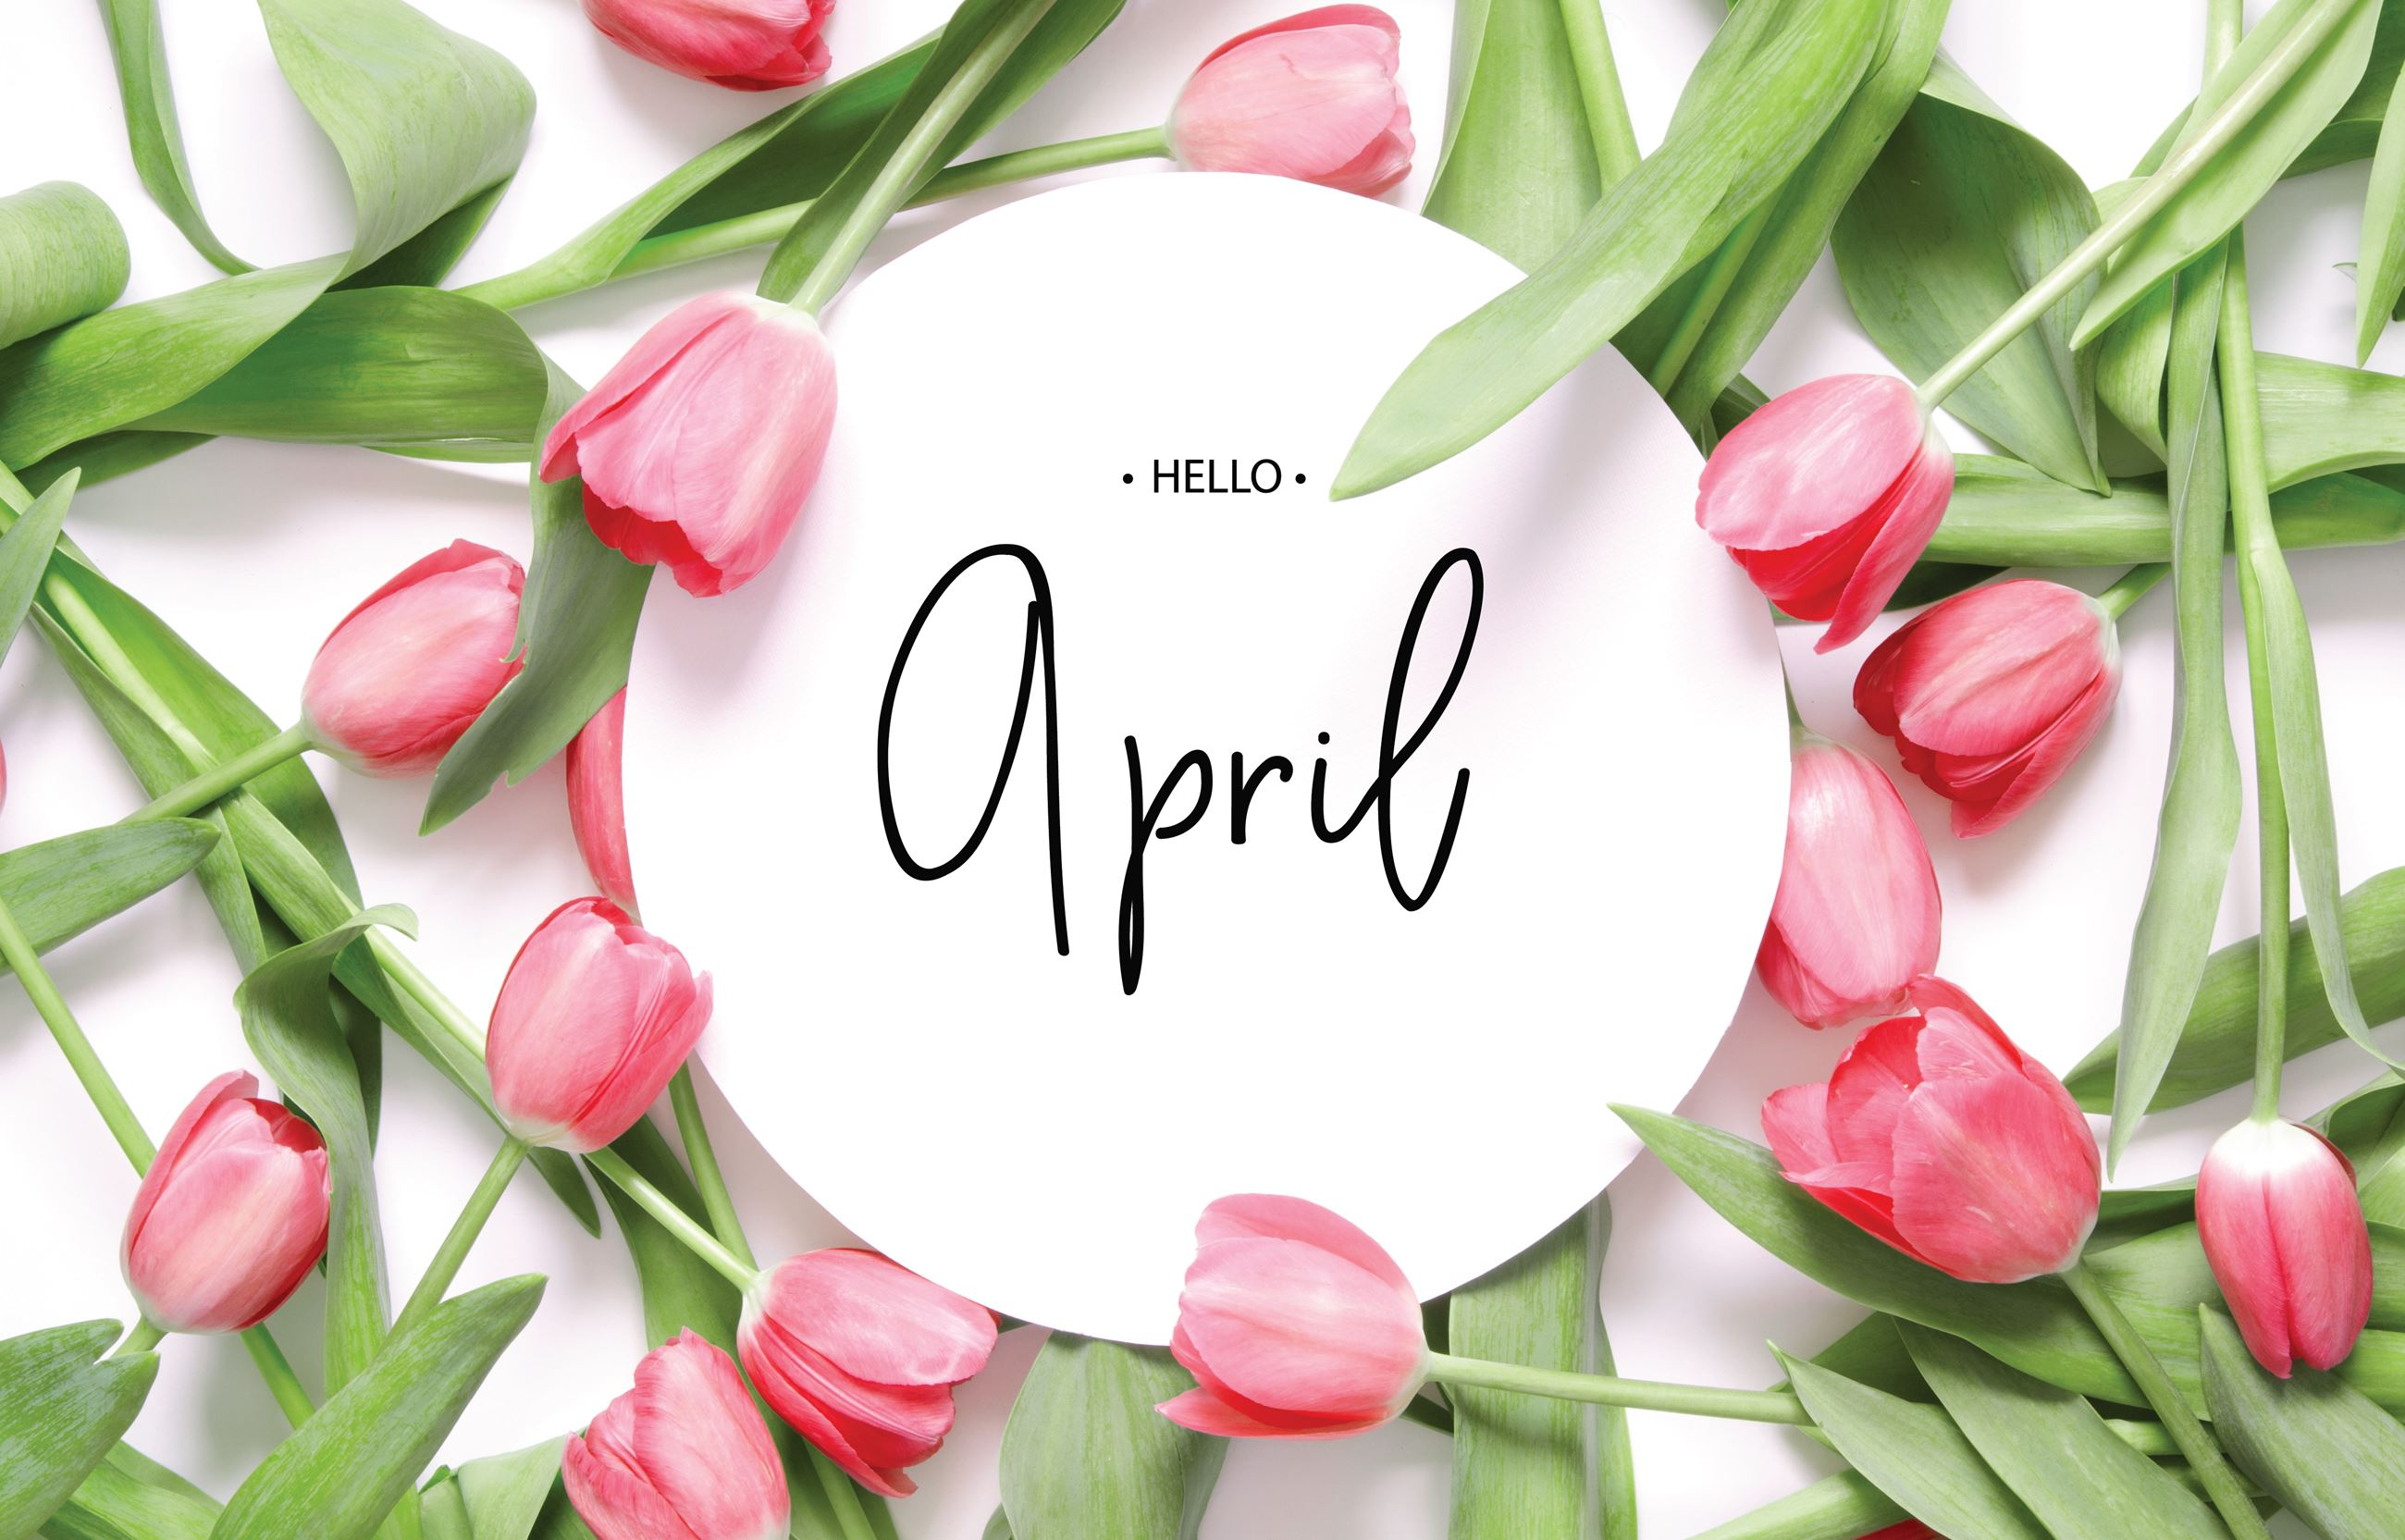 Hello April with pink tulips